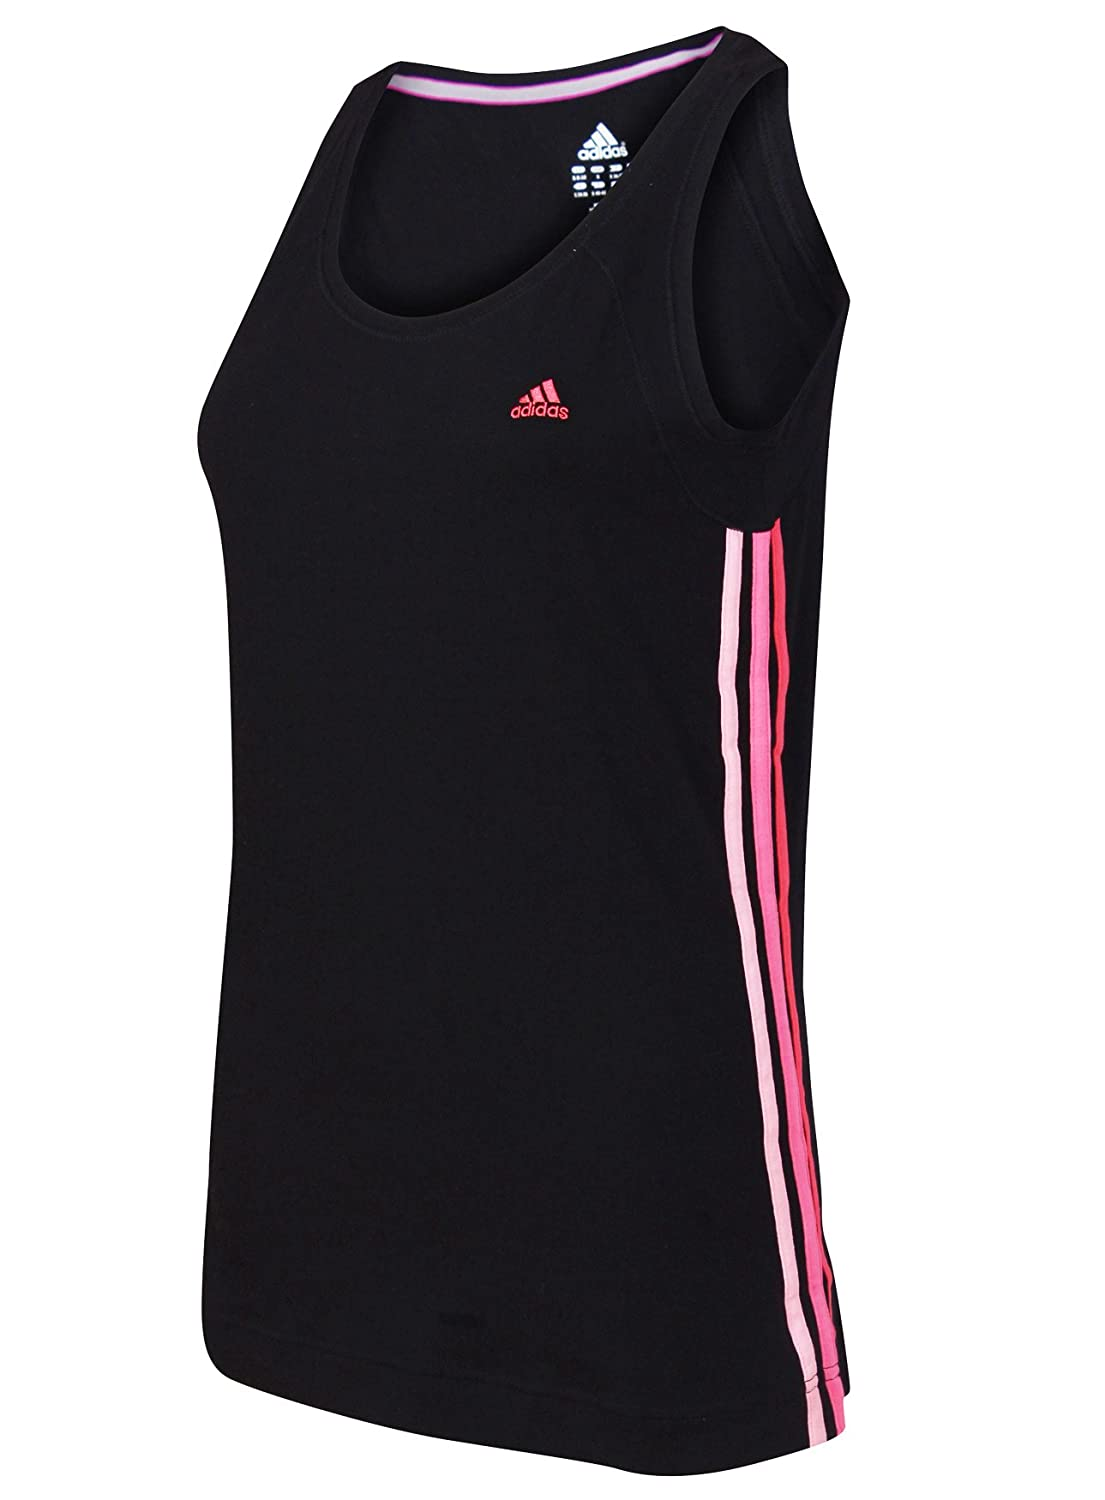 adidas Womens Ladies Performance Essentials 3S Black climalite Cotton Tank Top T-shirt Vest Tee X20800